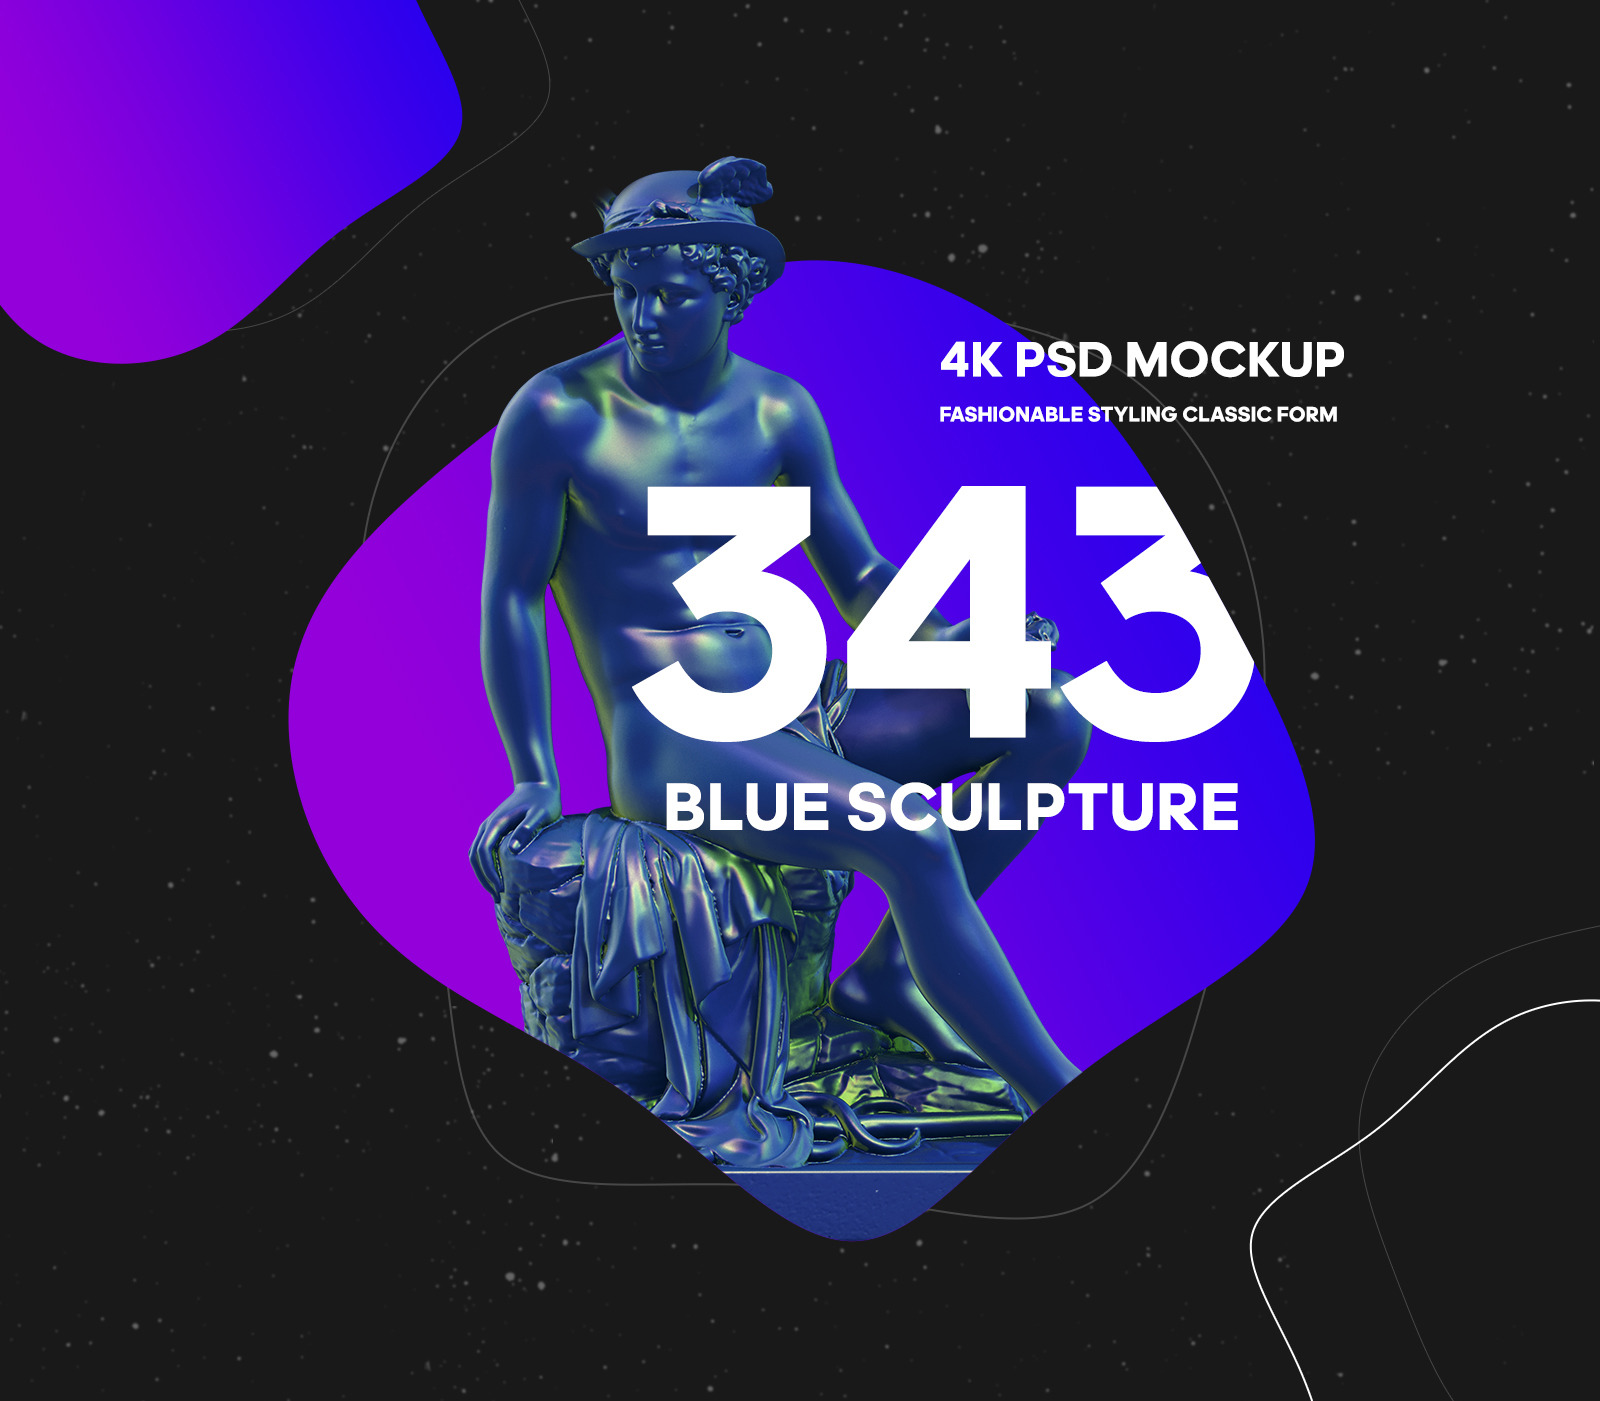 Collection of 343 Sculptures in Blue style # 11 for branding and design of your product